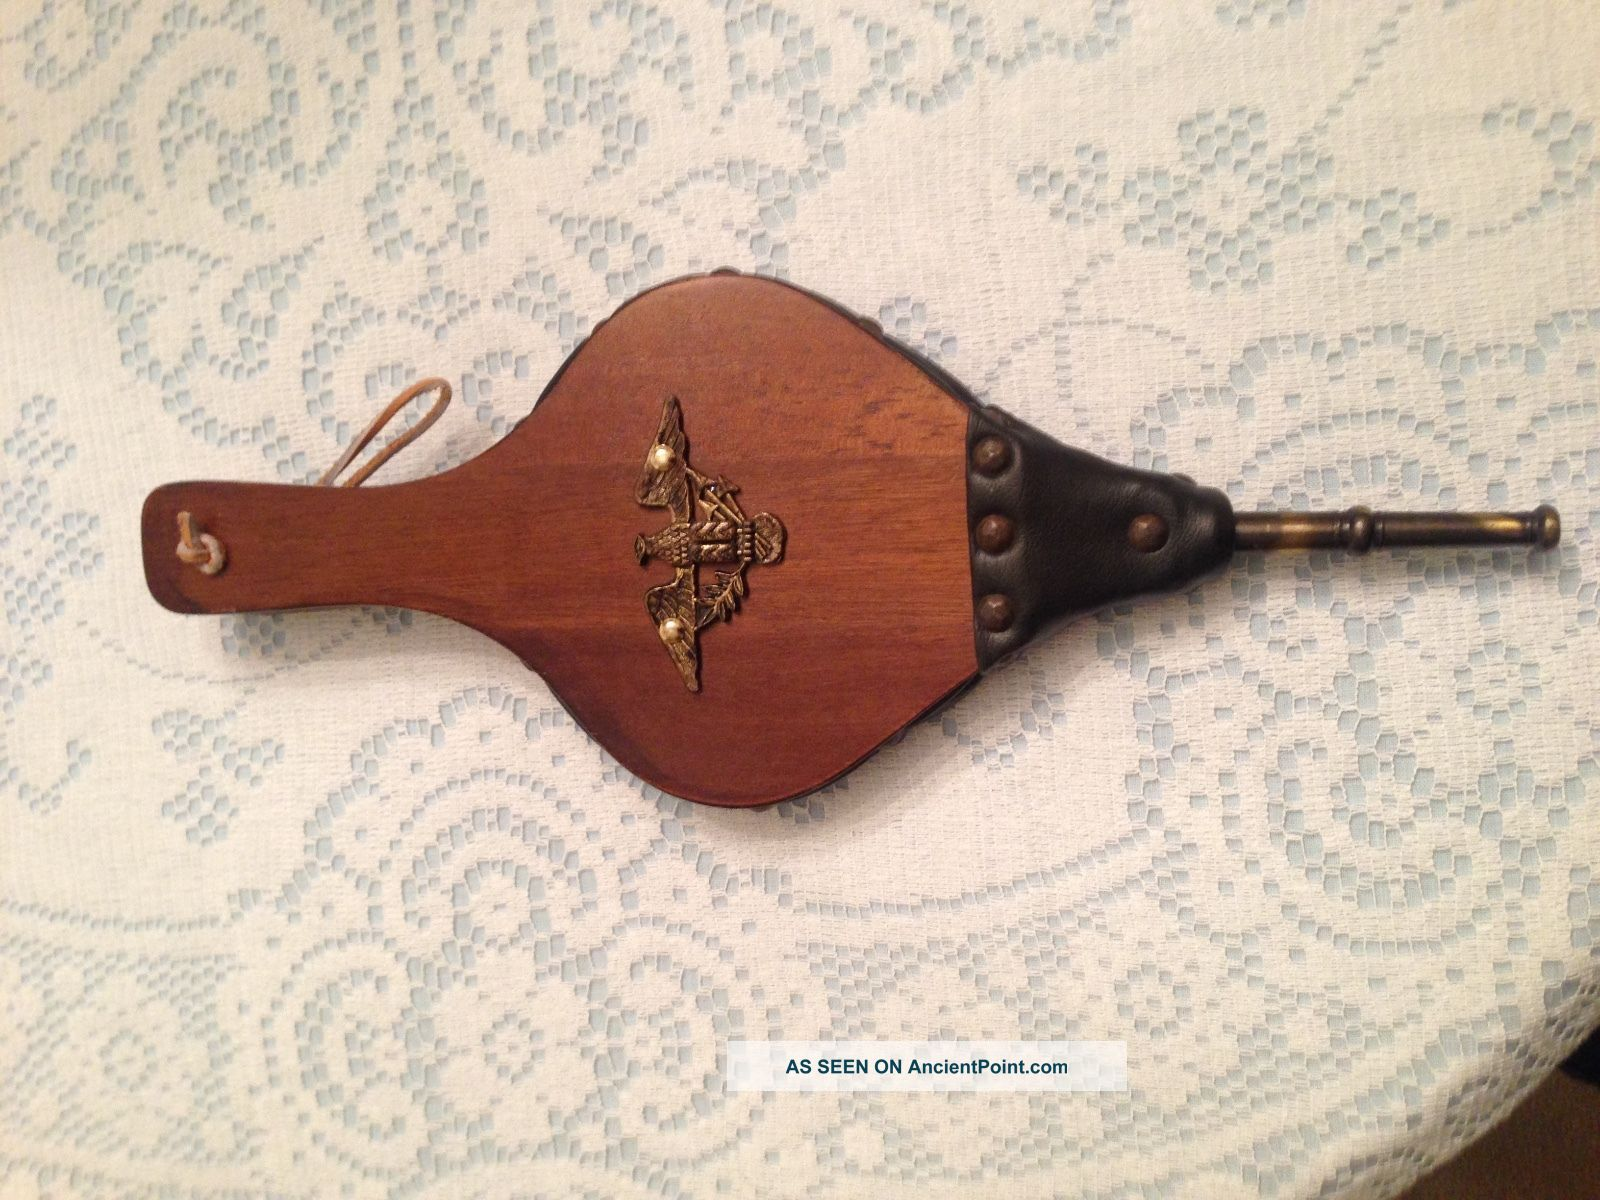 Vintage Fireplace Bellows W/eagle Crest Hearth Woodstove Tool Wood & Leather Hearth Ware photo